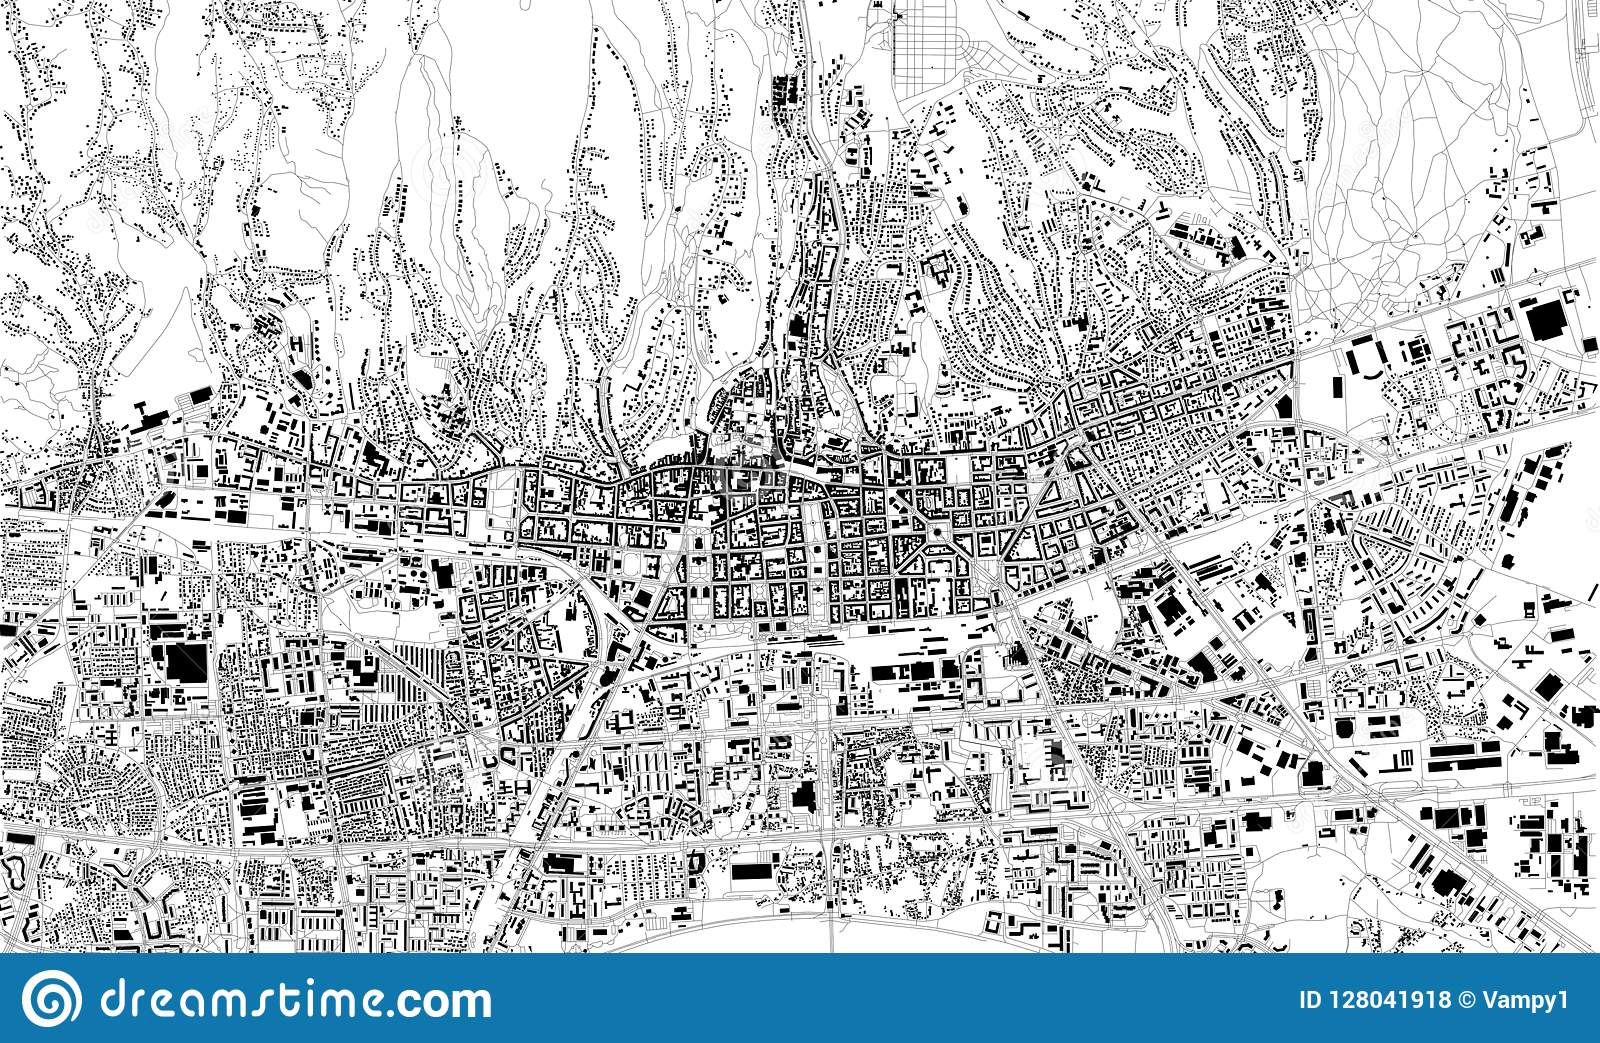 Satellite Map Of Zagreb, Croatia, Capital, City Streets Stock Vector on rijeka city map, opatija city map, prizren city map, vukovar city map, treviso city map, cotonou city map, belgrade city map, film city map, geneva city map, zug city map, serbia city map, goteborg city map, perth city map, pretend city map, cluj city map, santiago city map, pula city map, alicante city map, port of spain city map, marbella city map,